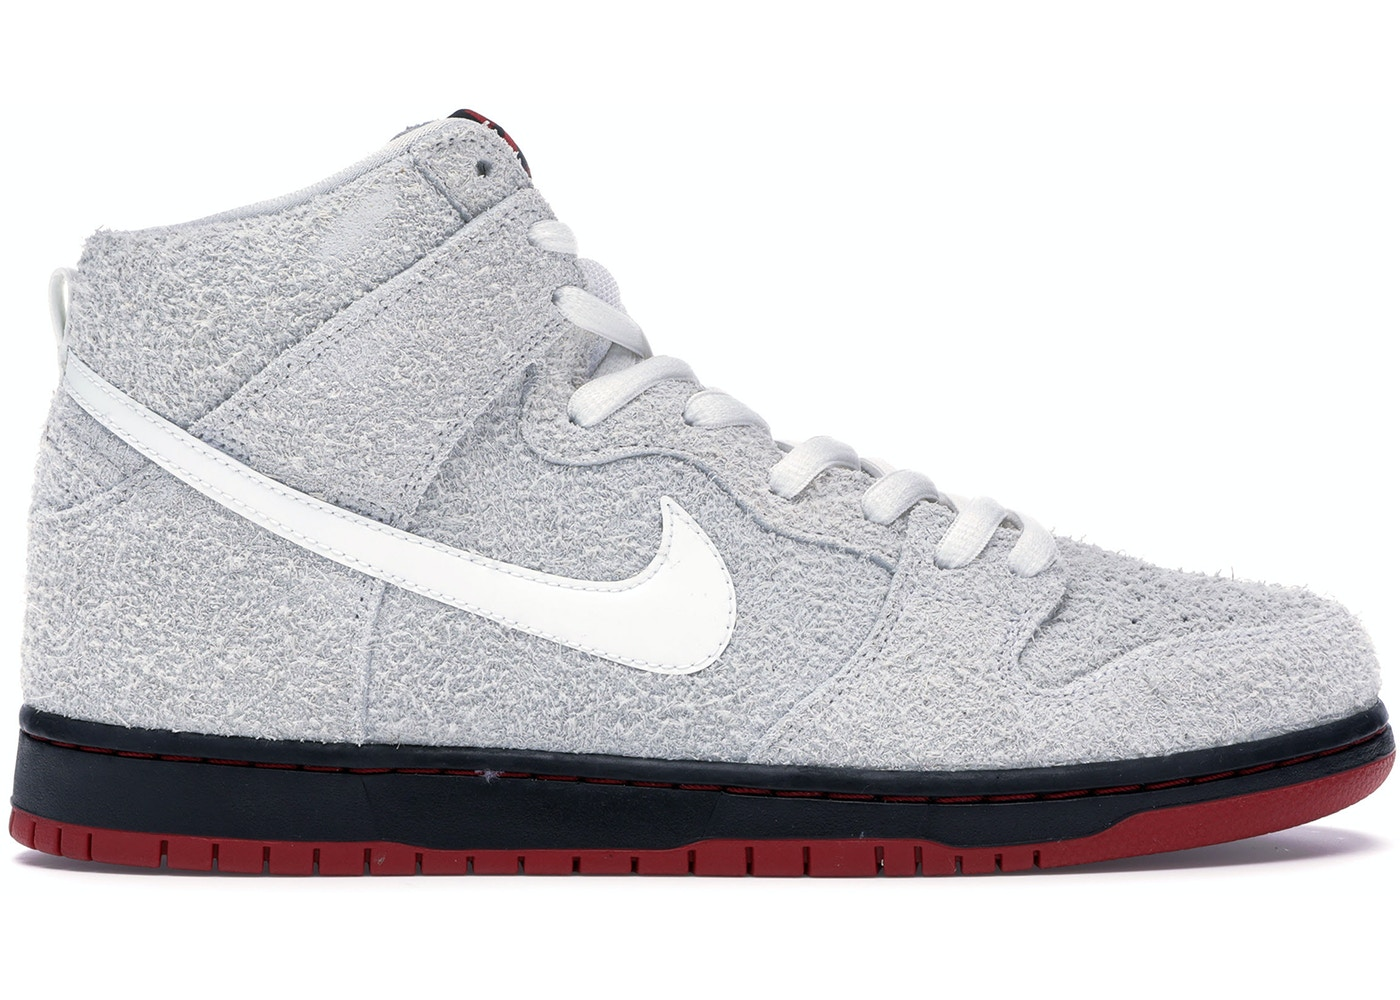 timeless design 8329d 90be4 Buy Nike SB SB Dunk High Shoes & Deadstock Sneakers